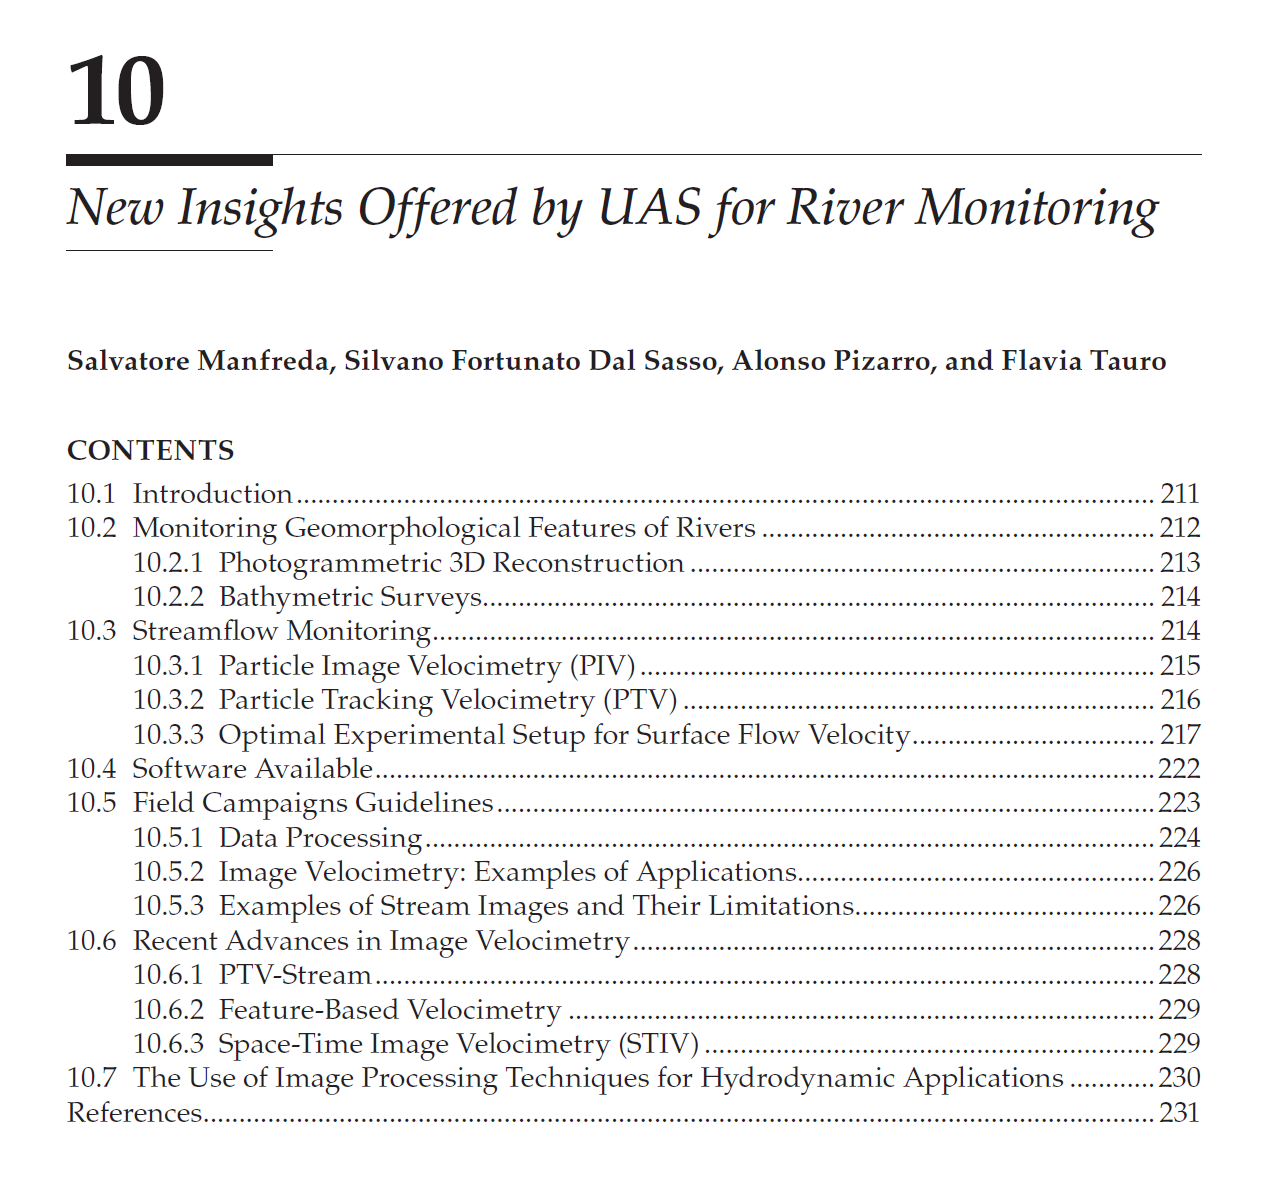 New Insights Offered by UAS for River Monitoring